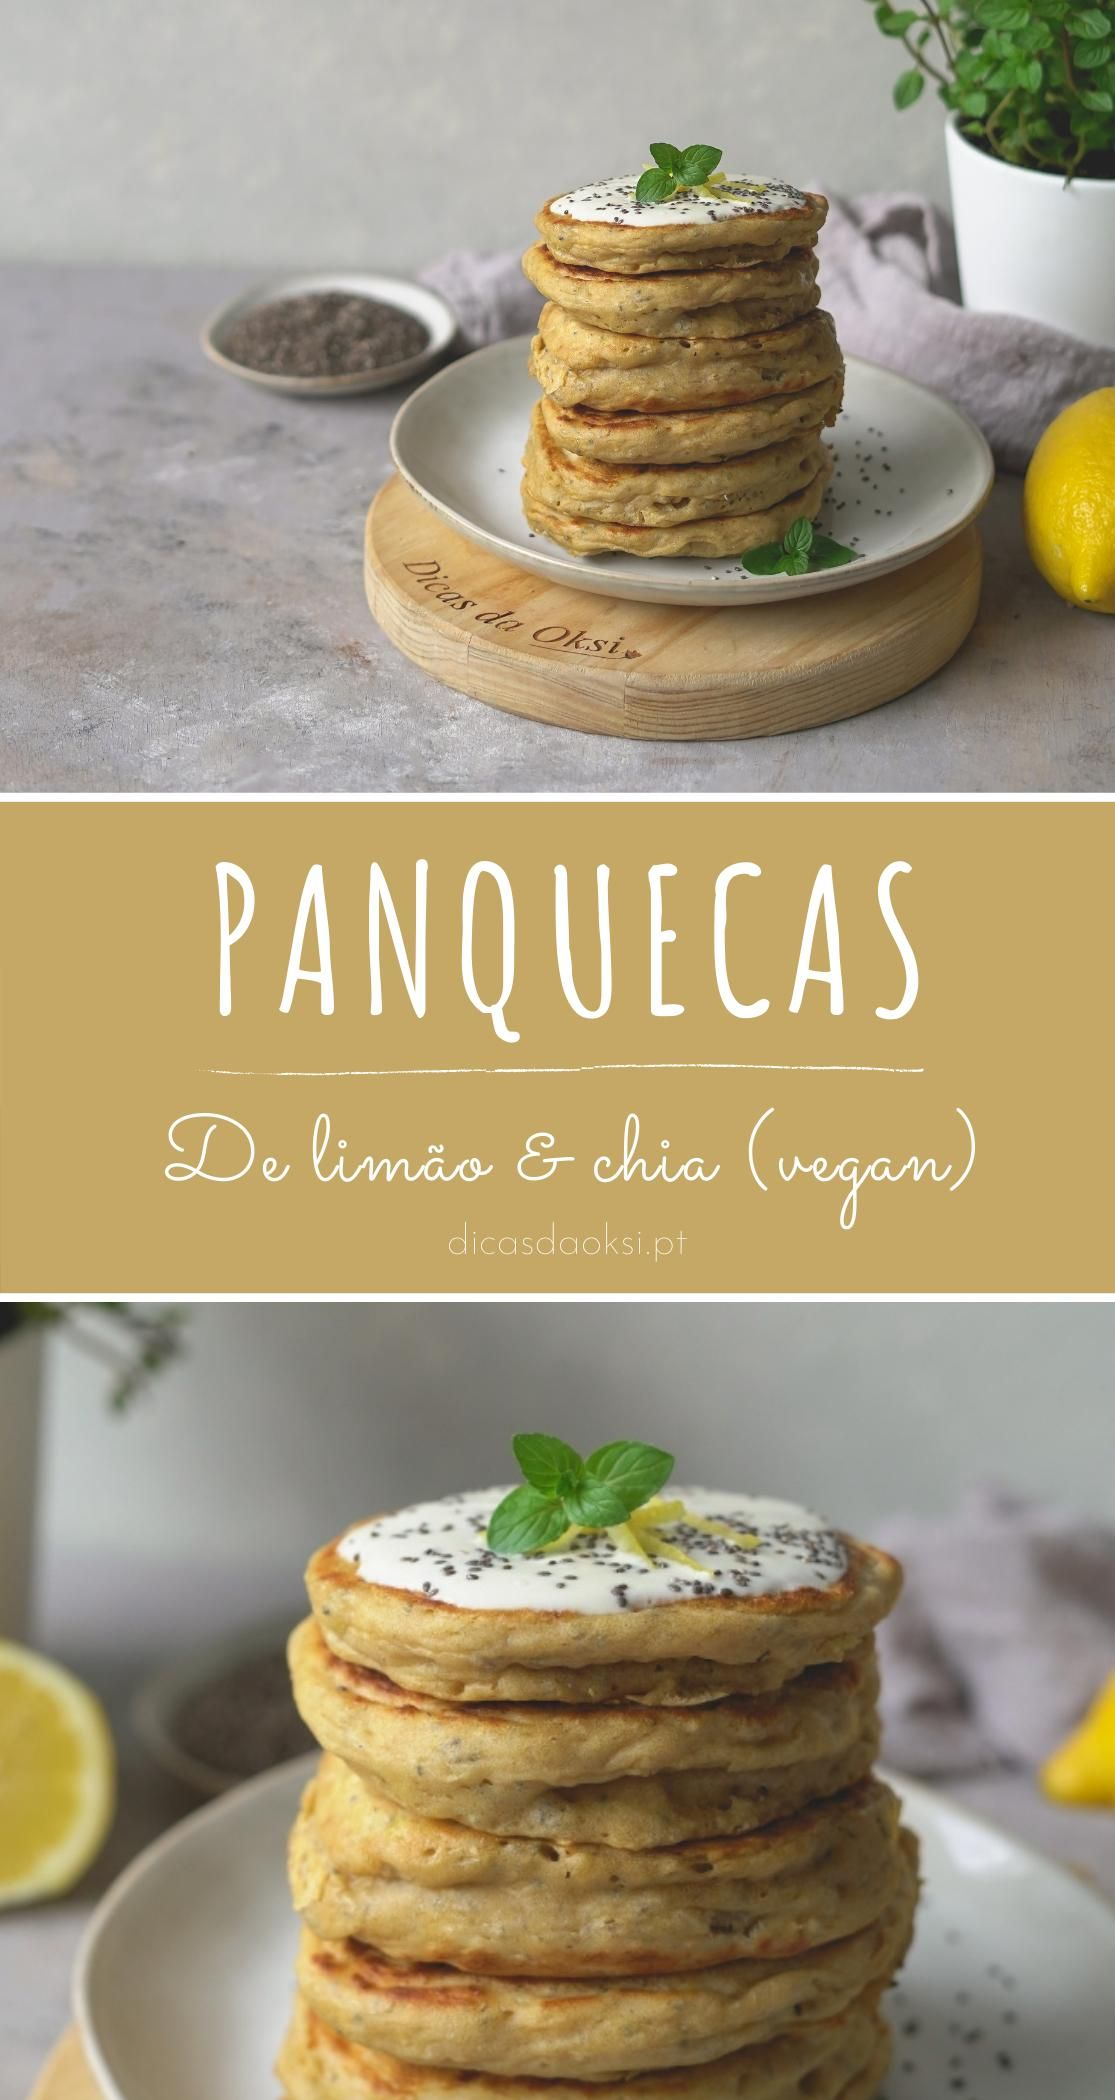 Photo of Panquecas vegan de limão & chia